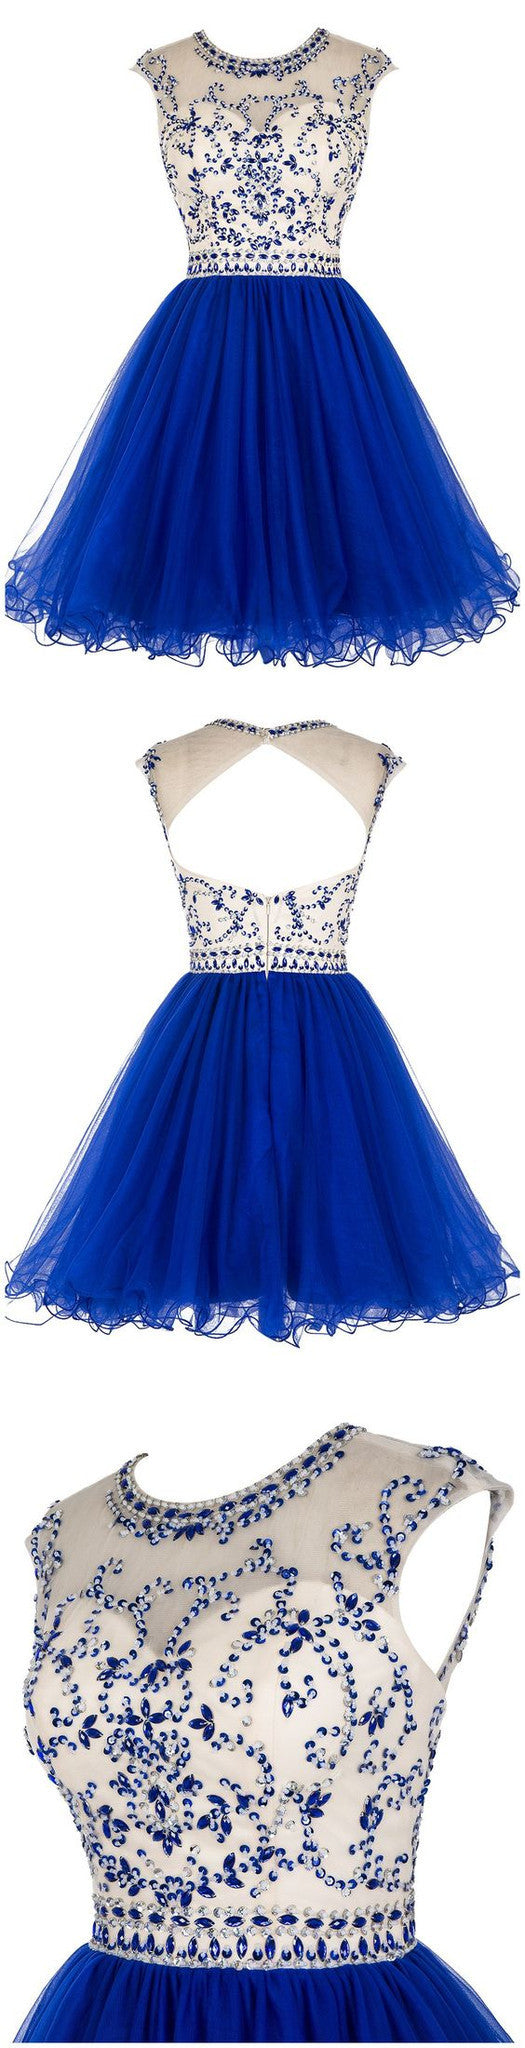 Sexy Cap Sleeve Round Neck Sequins Appliques Open Keyhole Back Royal Blue Homecoming Prom Dresses, CM0008